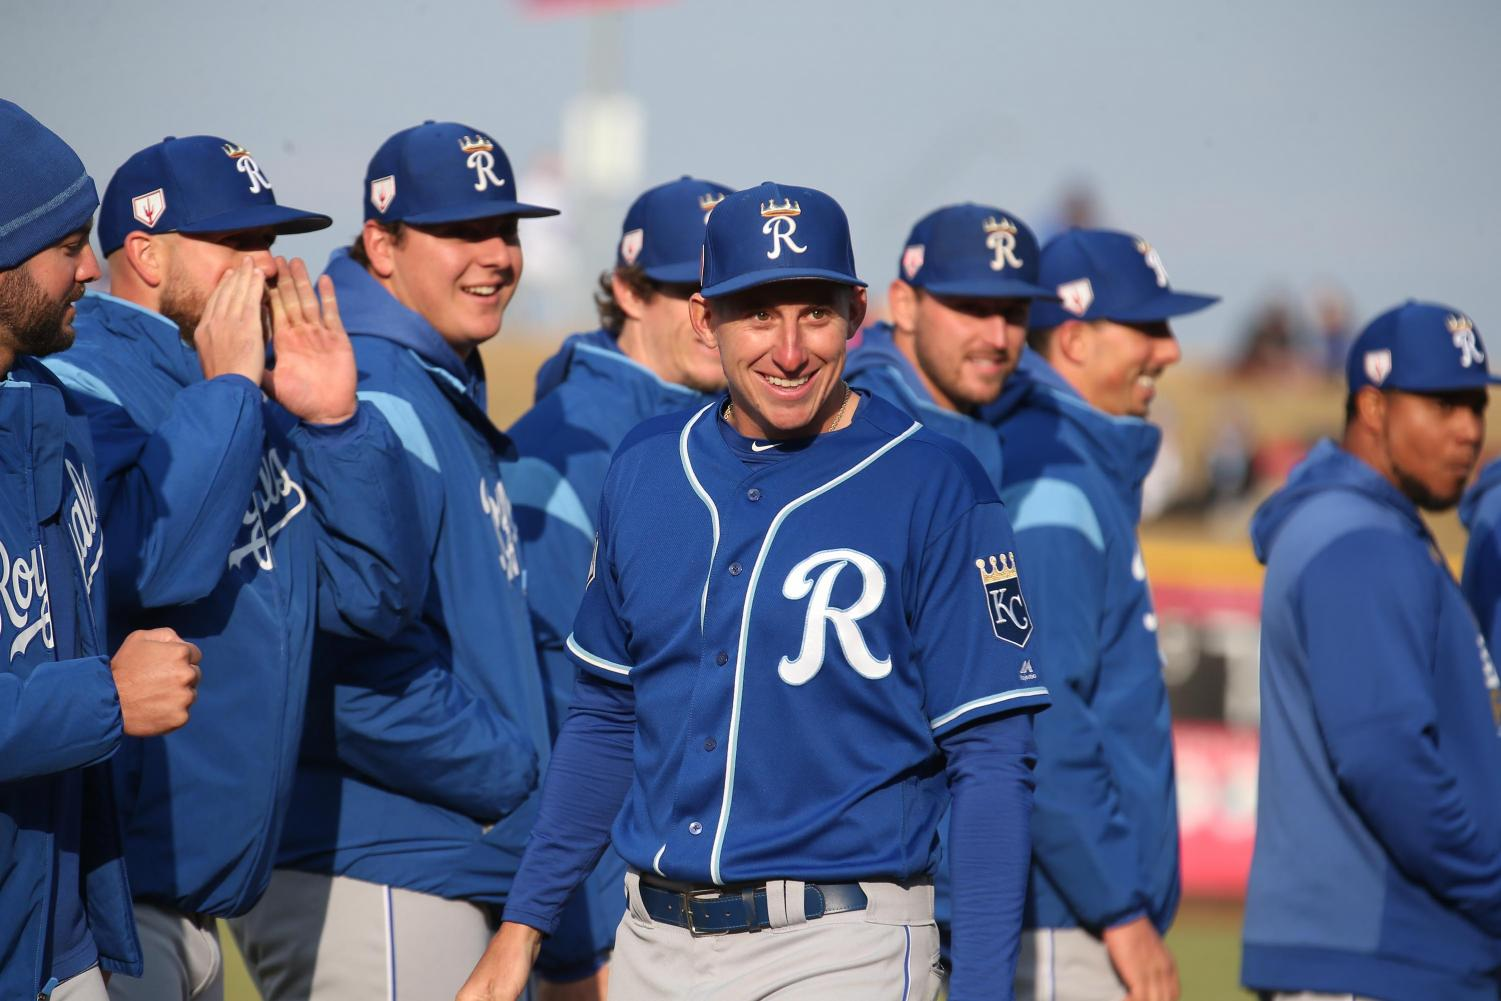 Frank Schwindel, first baseman, receives a warm ovation from the crowd in Omaha before an exhibition game. Schwindel received news prior to the game that he had been selected for the Royals' Major League roster for Opening Day. Photo courtesy of Minda Haas Kuhlmann.